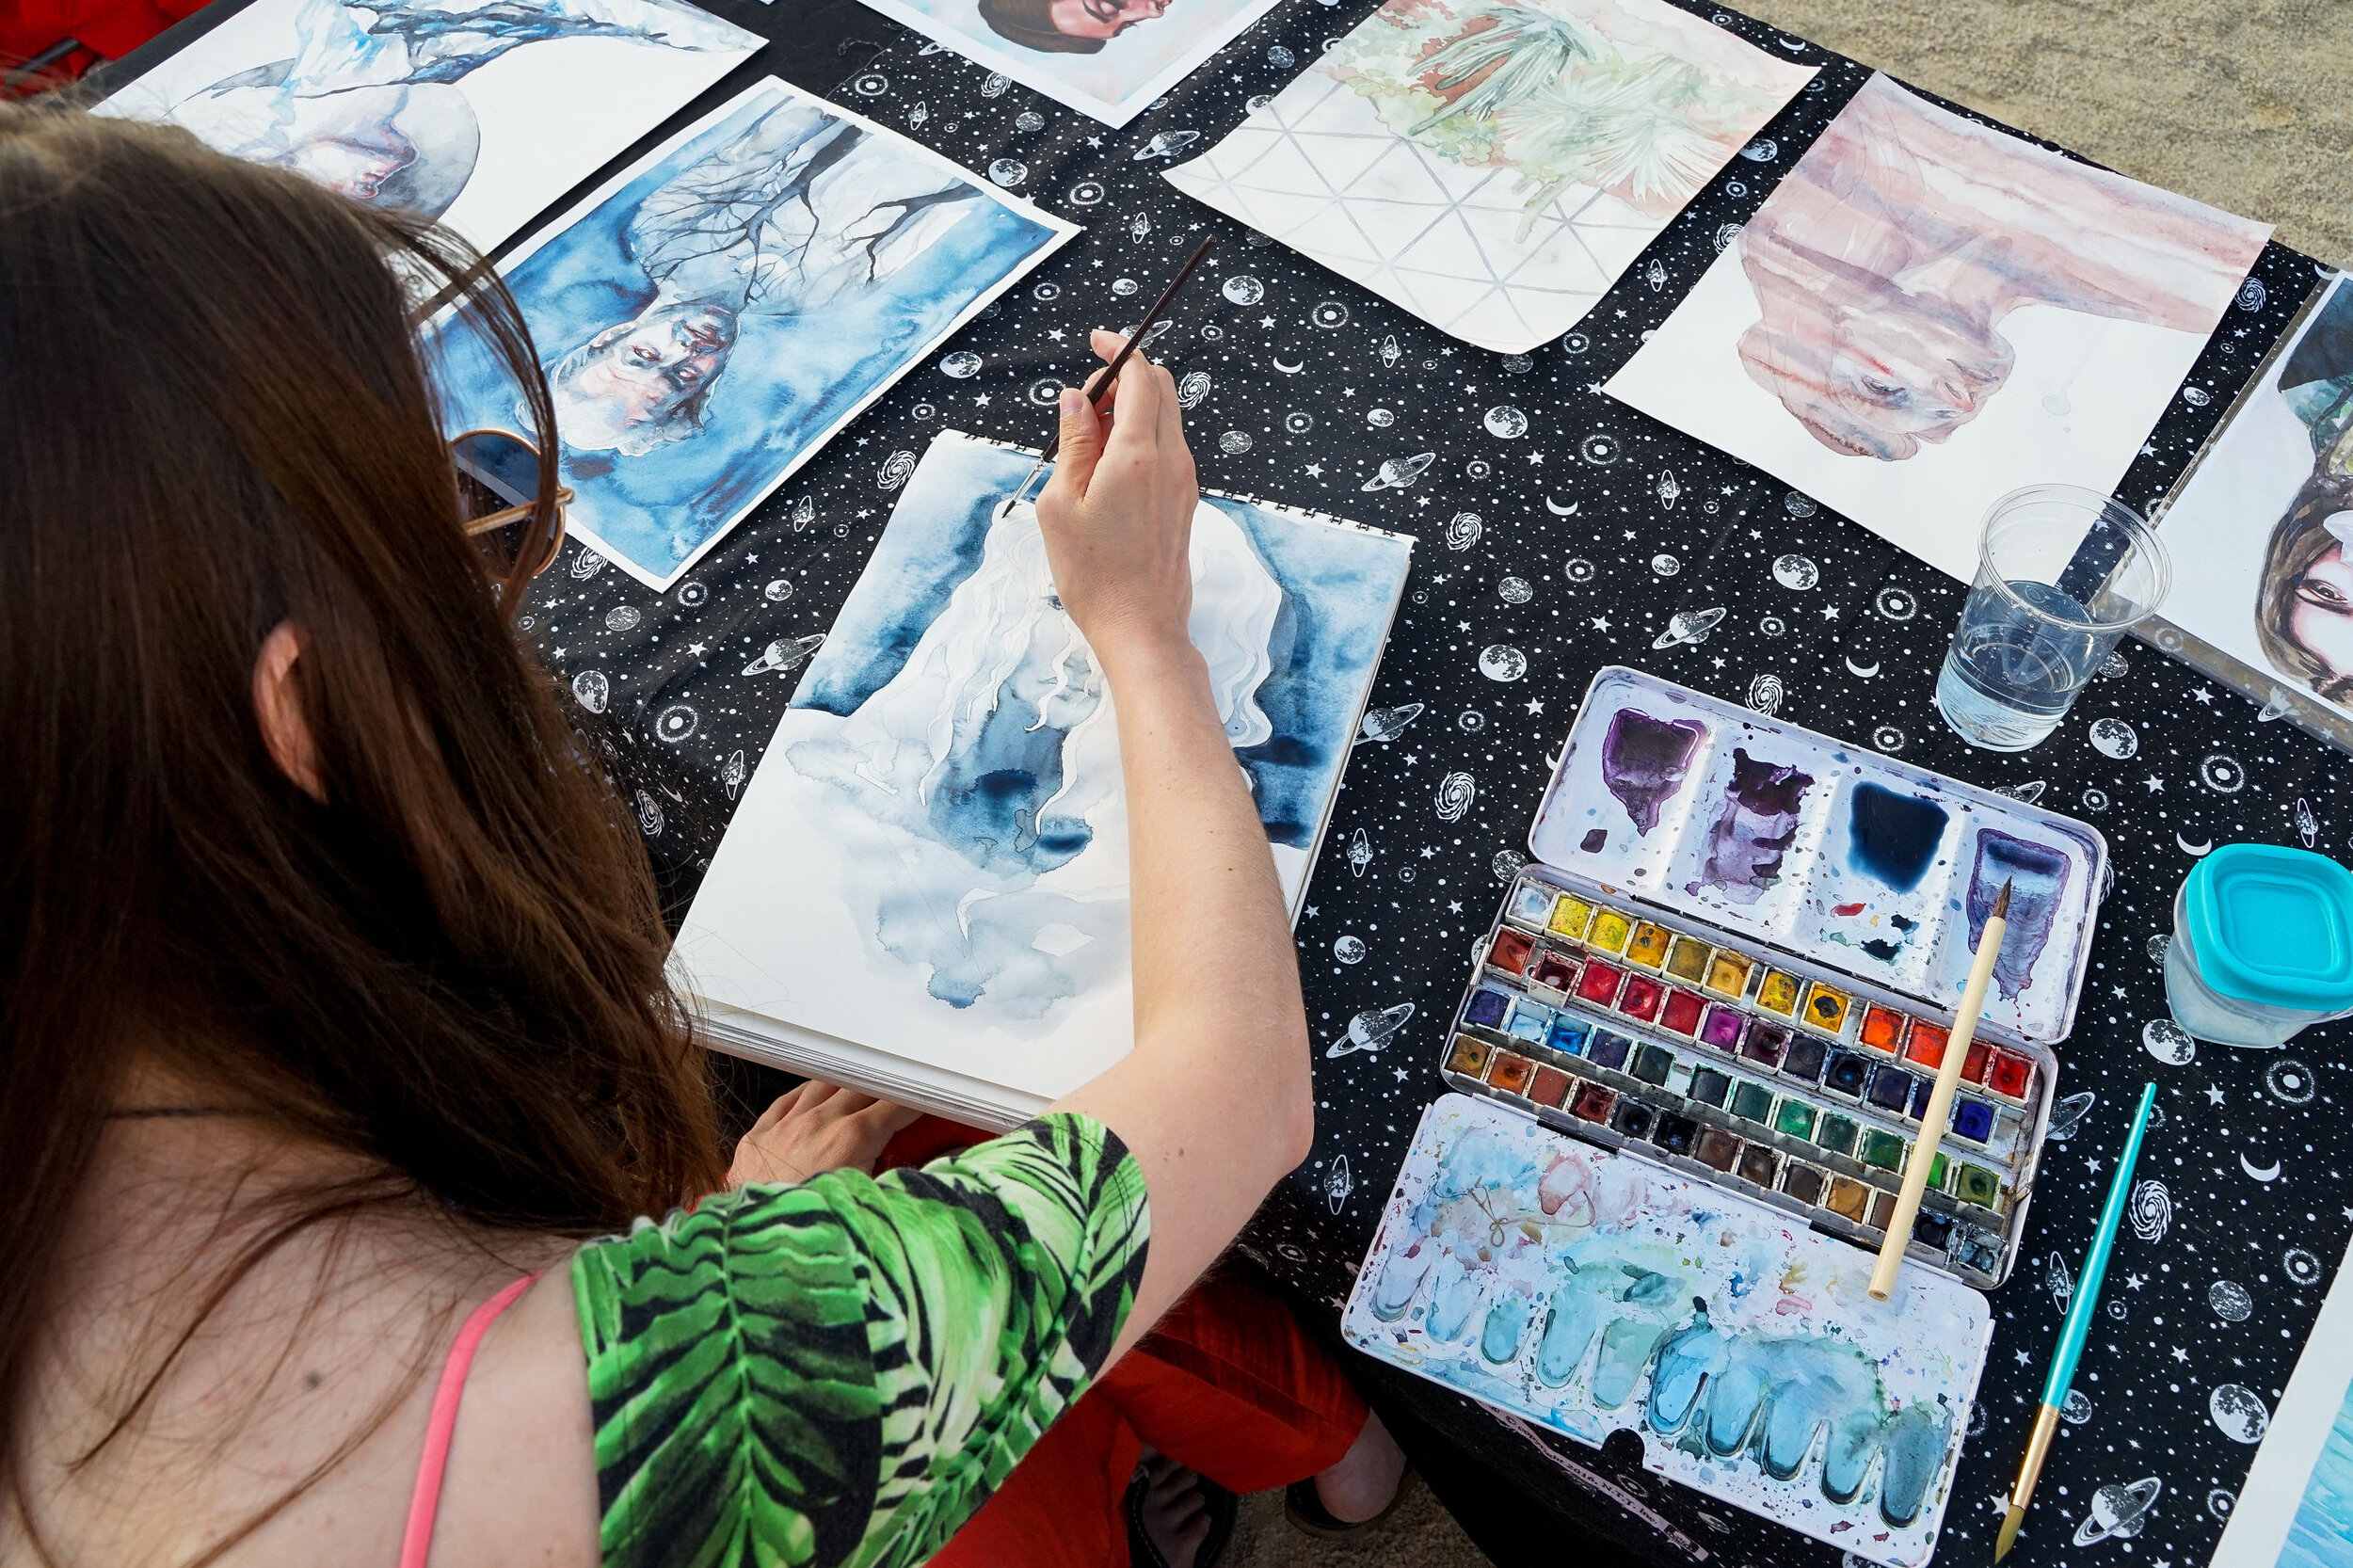 Art in progress by artist Kristen Lopez. Photograph by Charlie and Taylor Photography.